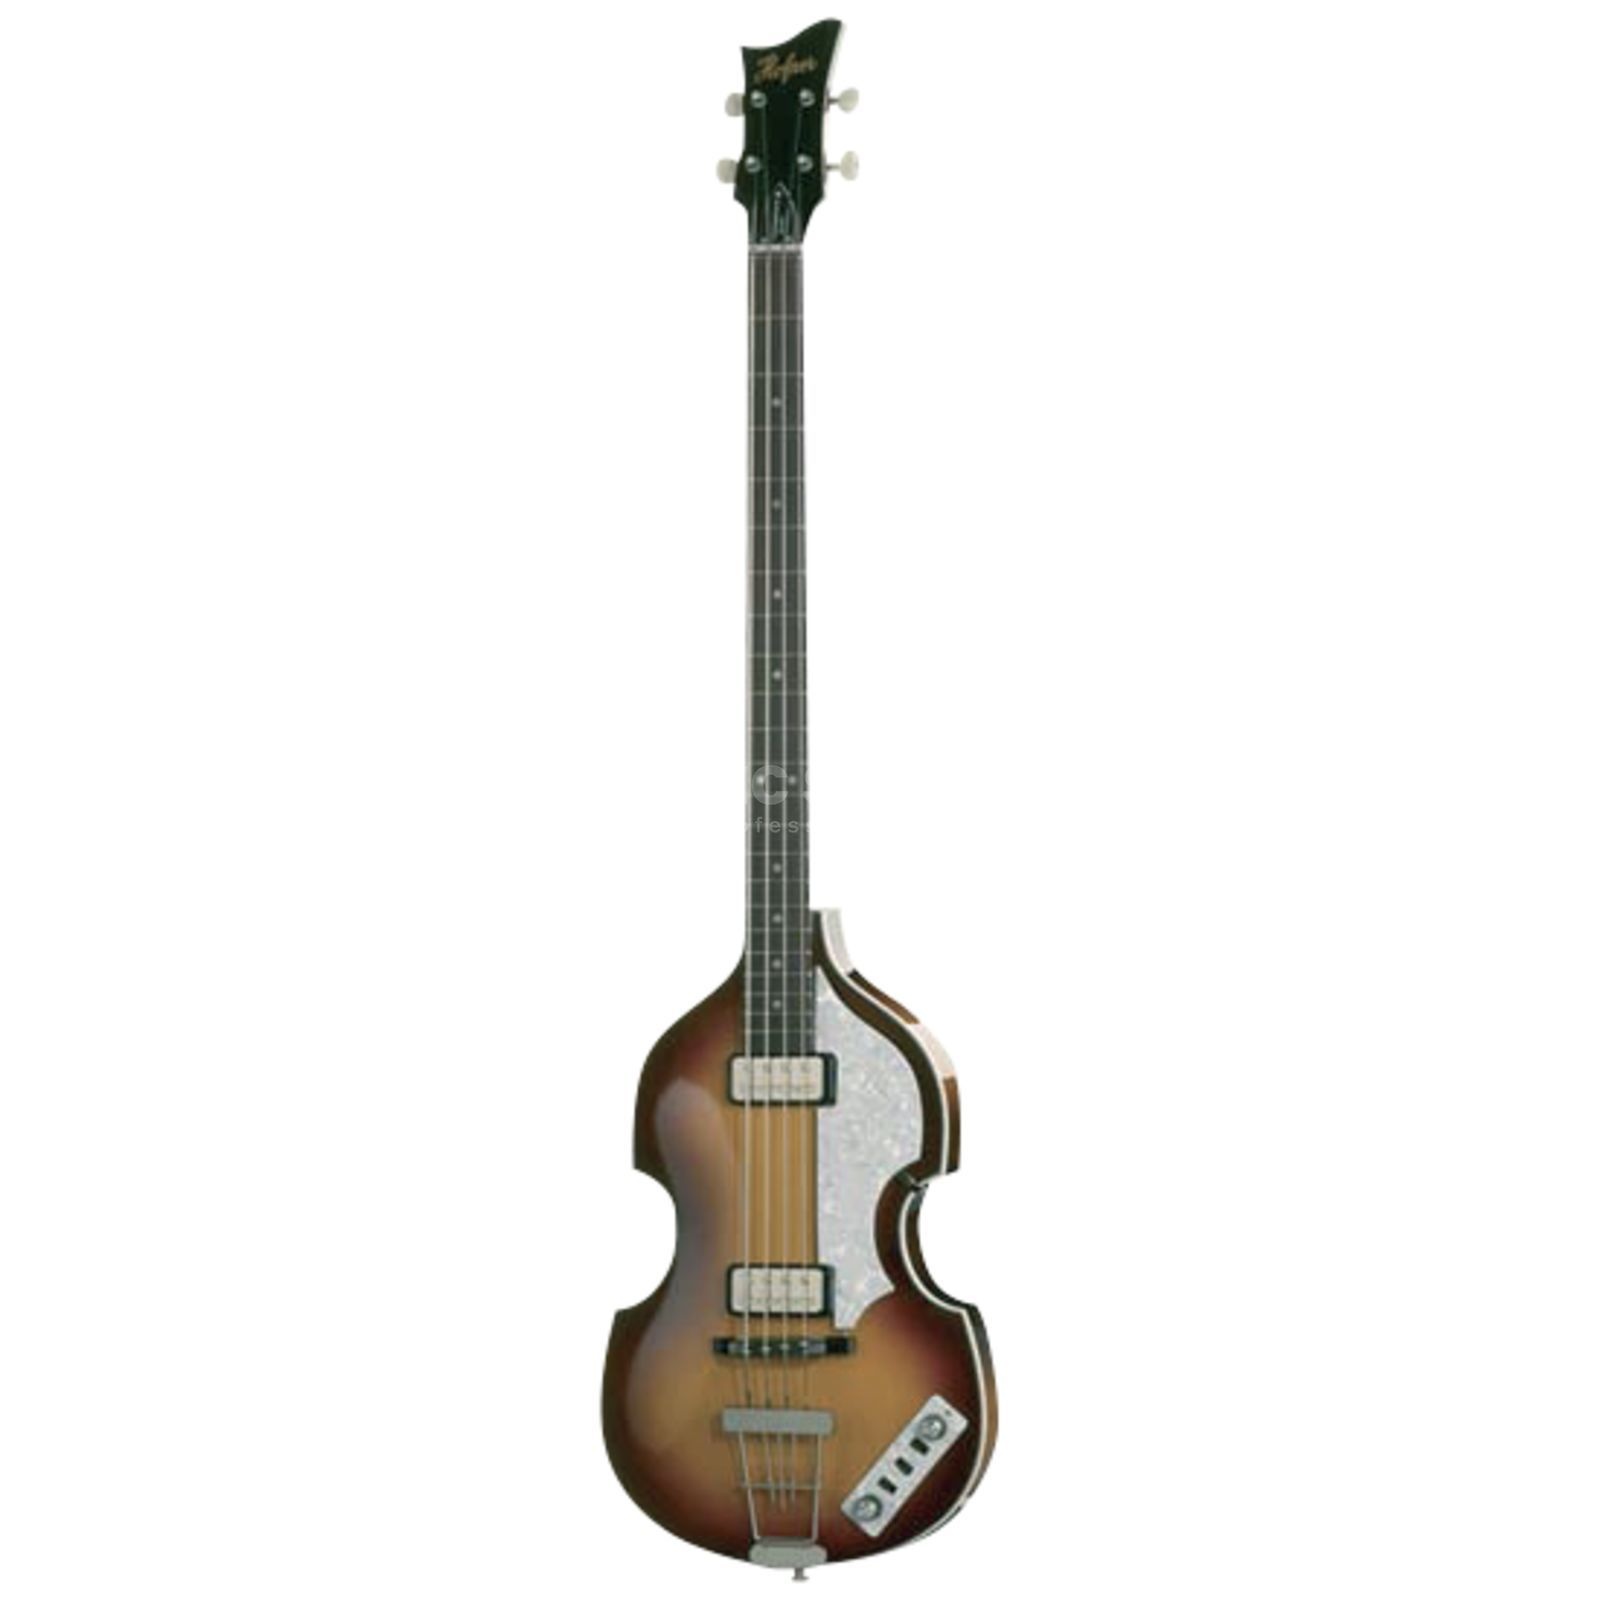 Höfner Violin Bass Sunburst Contemporary Series Product Image